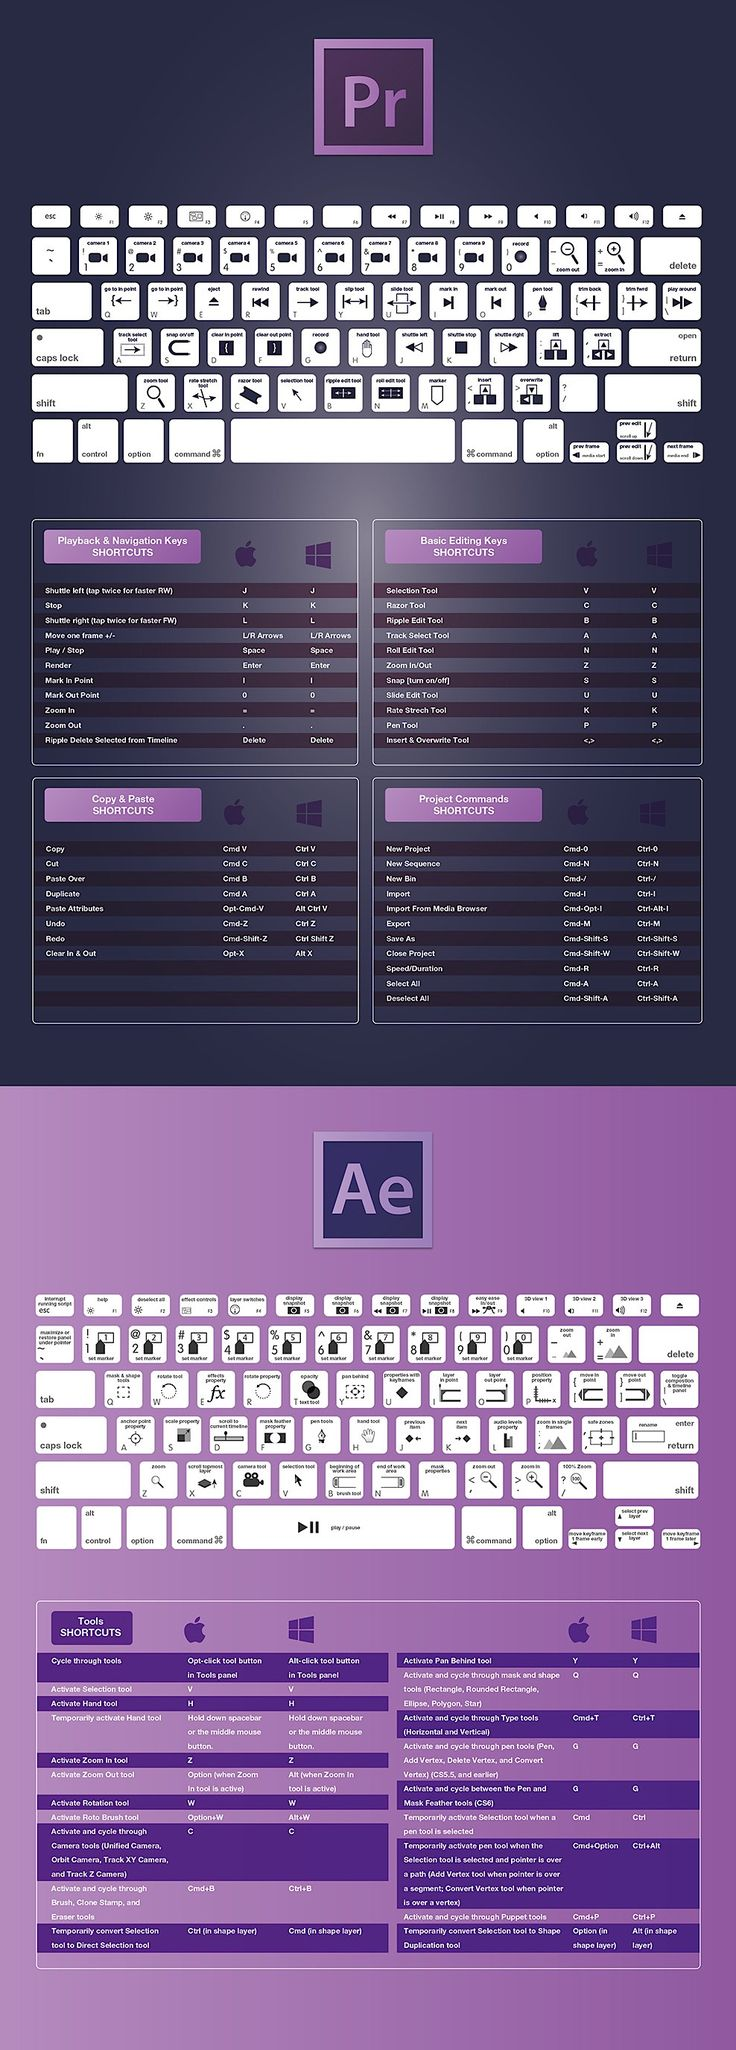 Premiere Pro and After Effects Keyboard Shortcuts